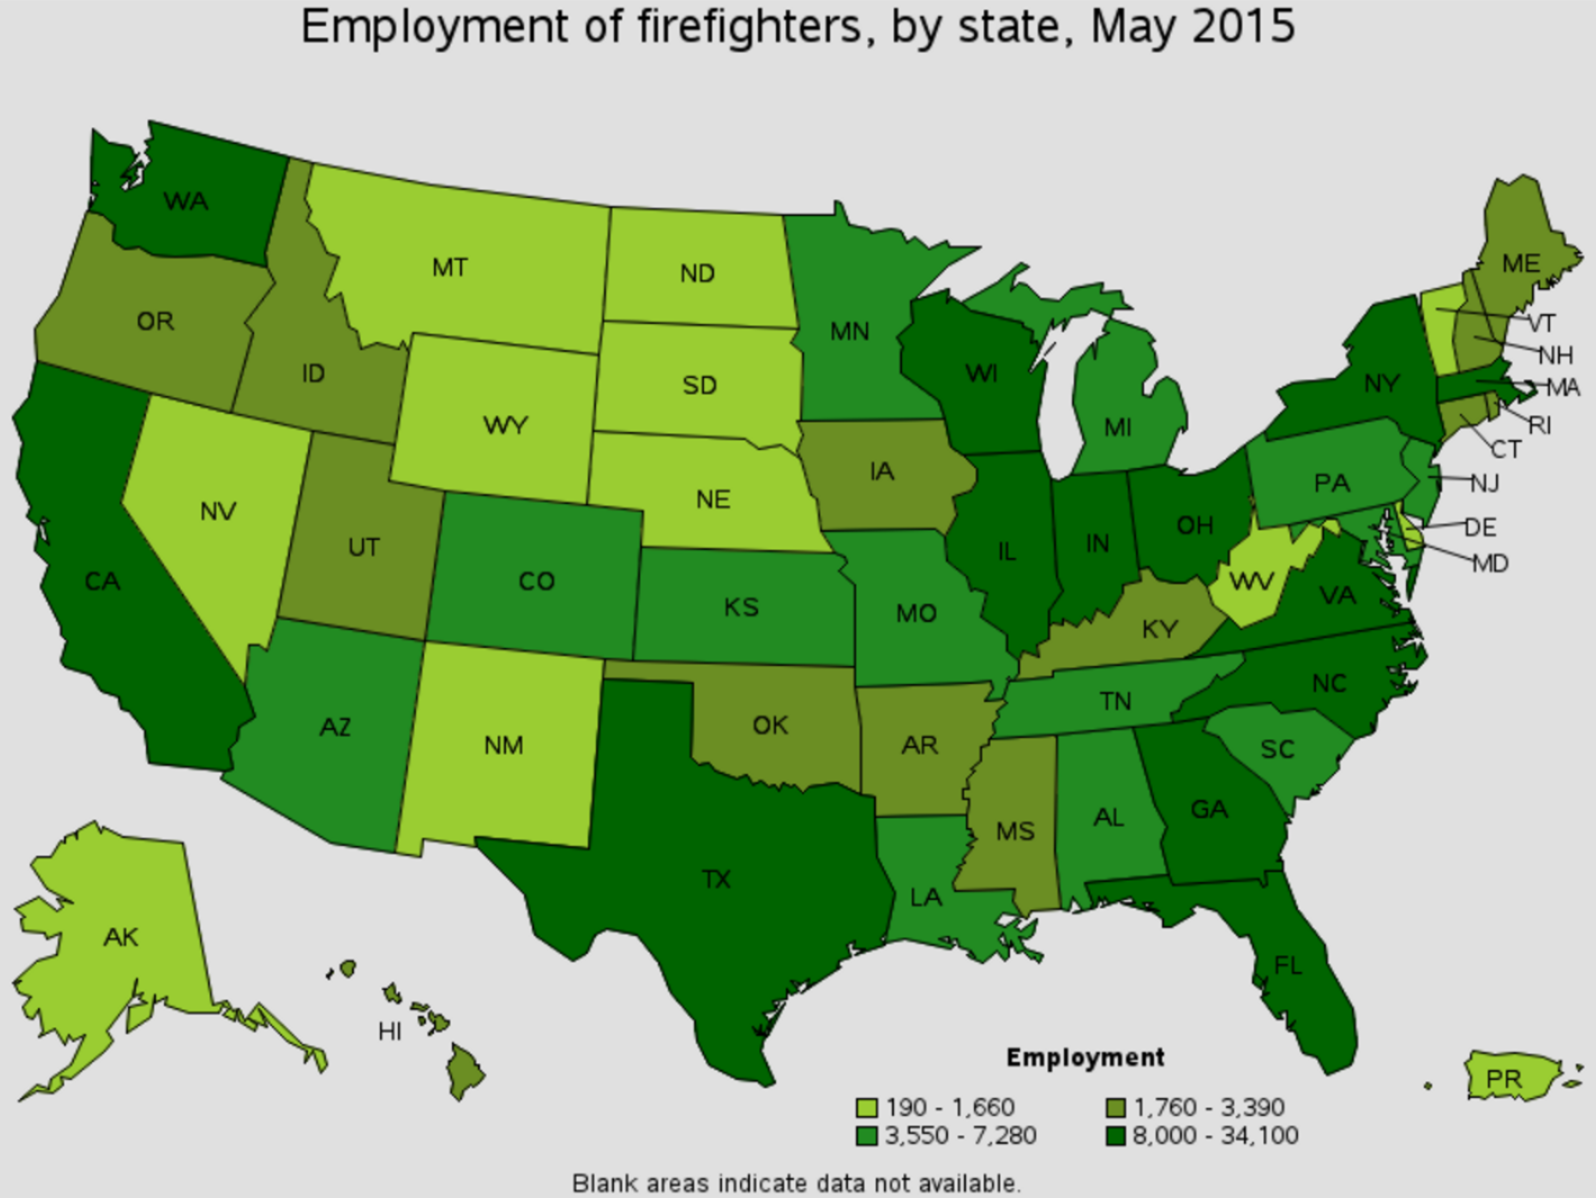 firefighter job outlook by state Woodlawn Virginia